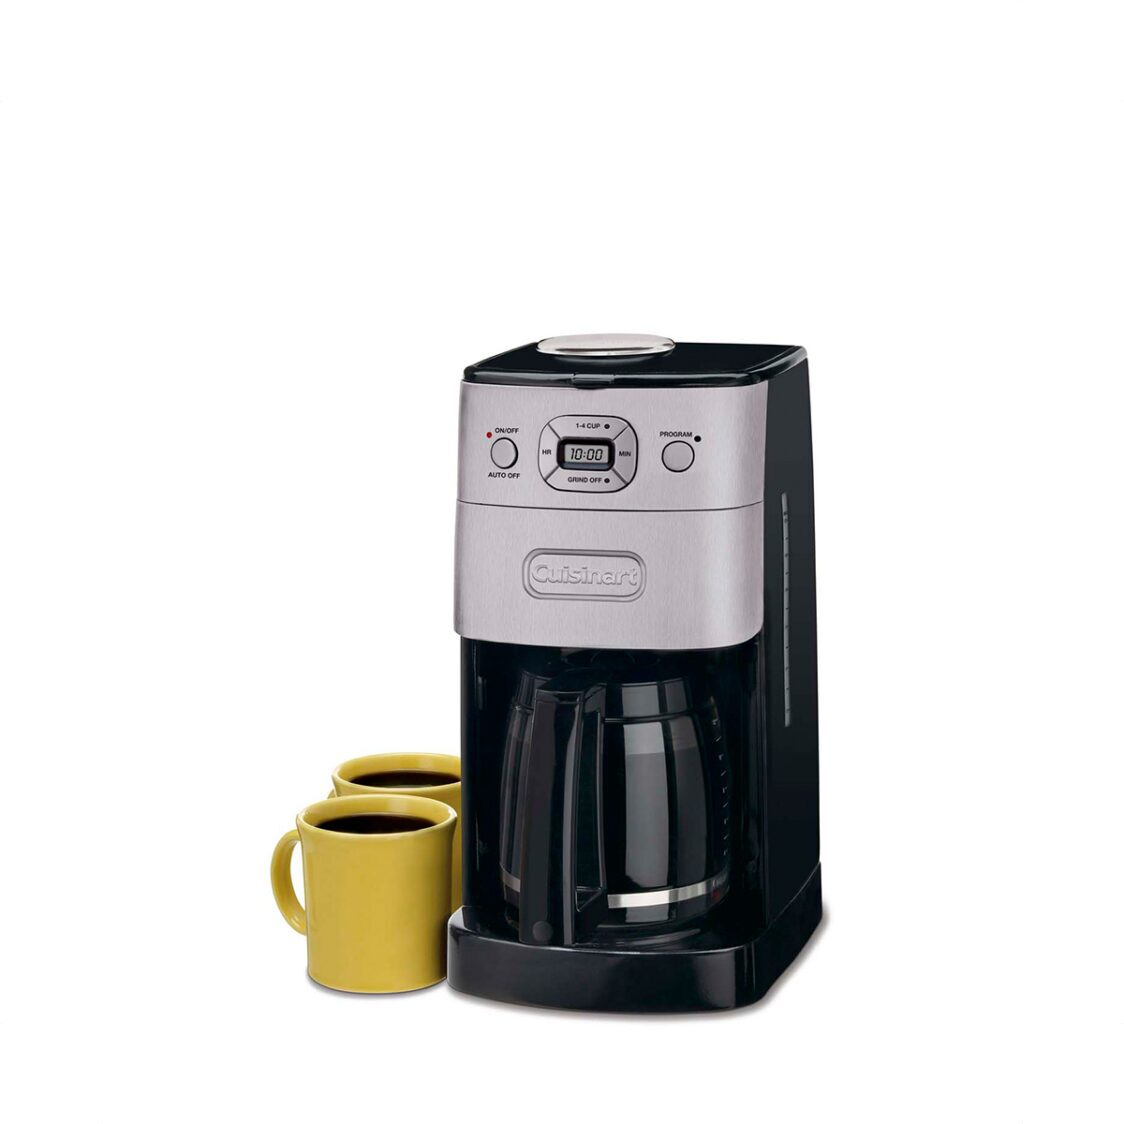 Cuisinart Grind Brew 12-CUP Automatic Coffee maker